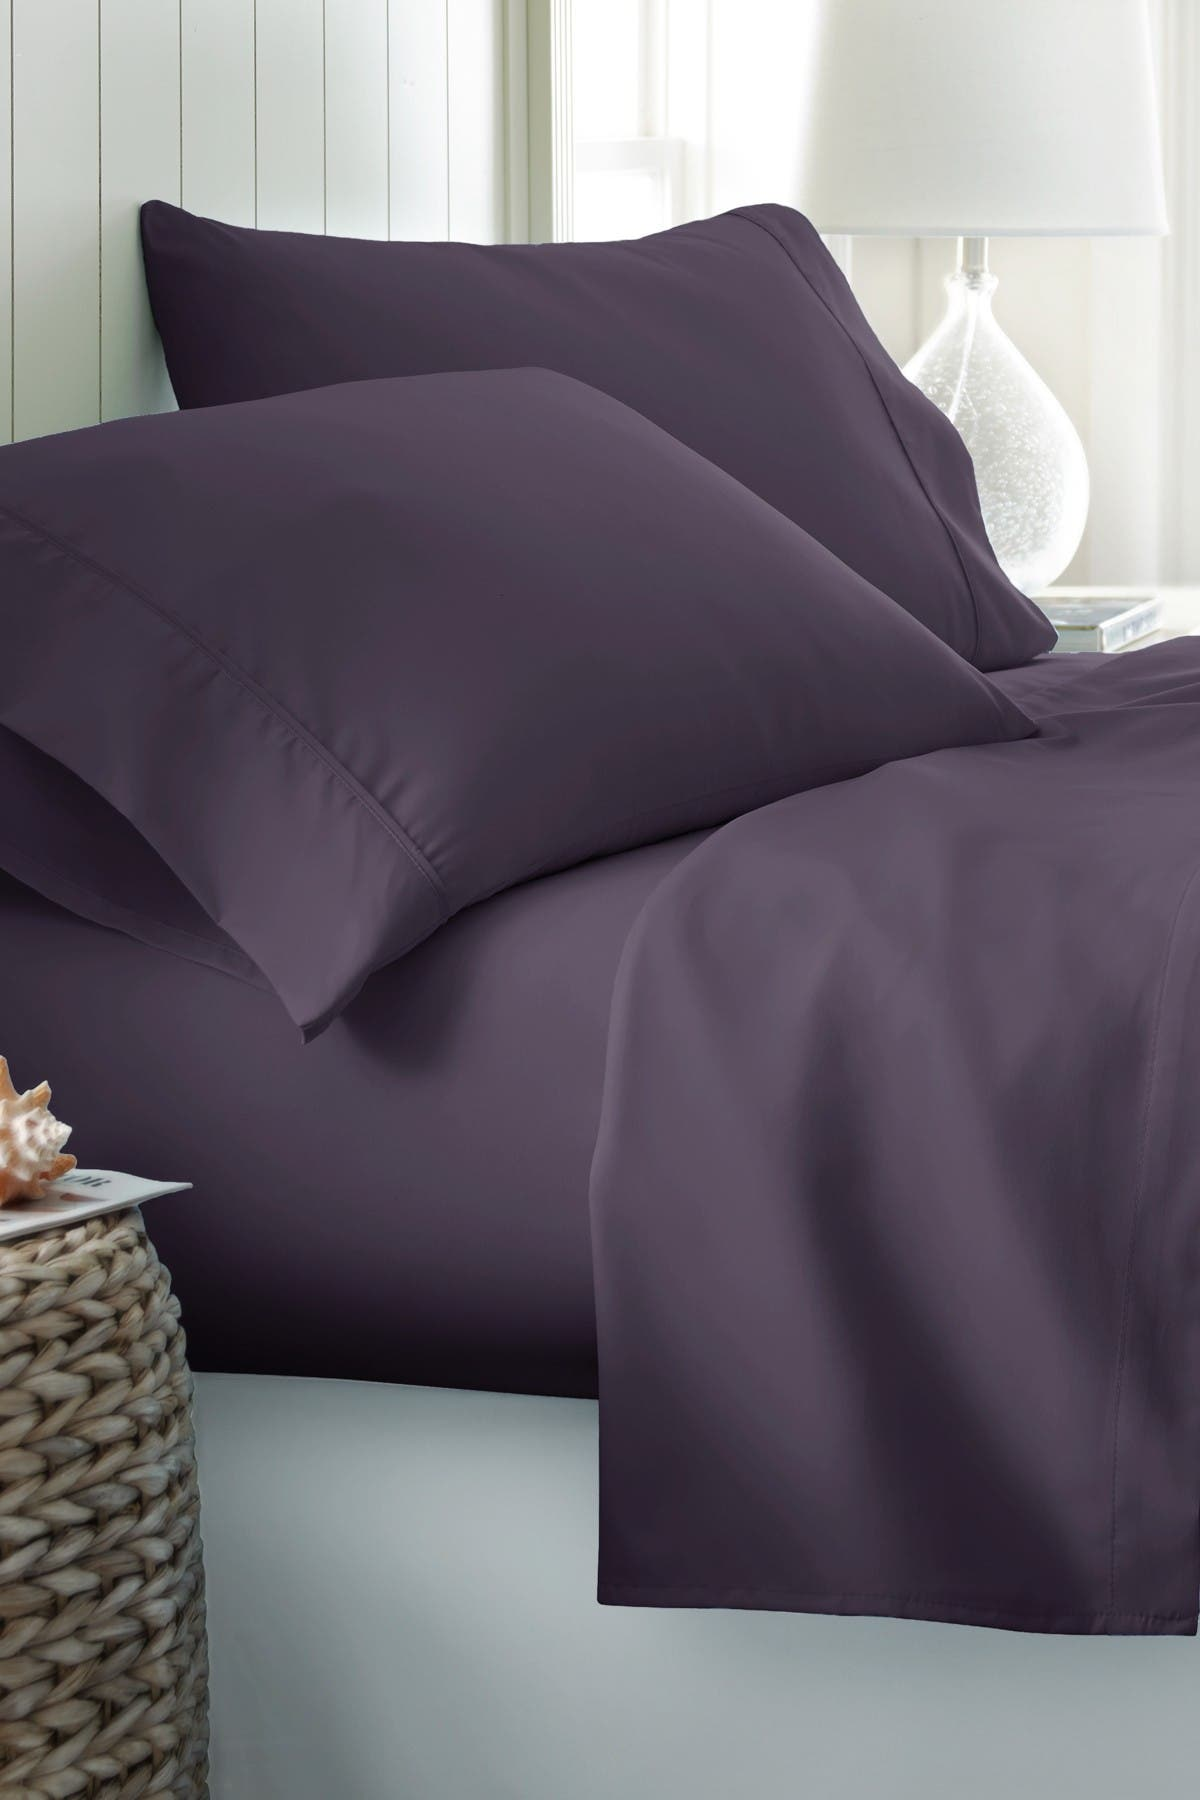 Image of IENJOY HOME King Hotel Collection Premium Ultra Soft 4-Piece Bed Sheet Set - Purple